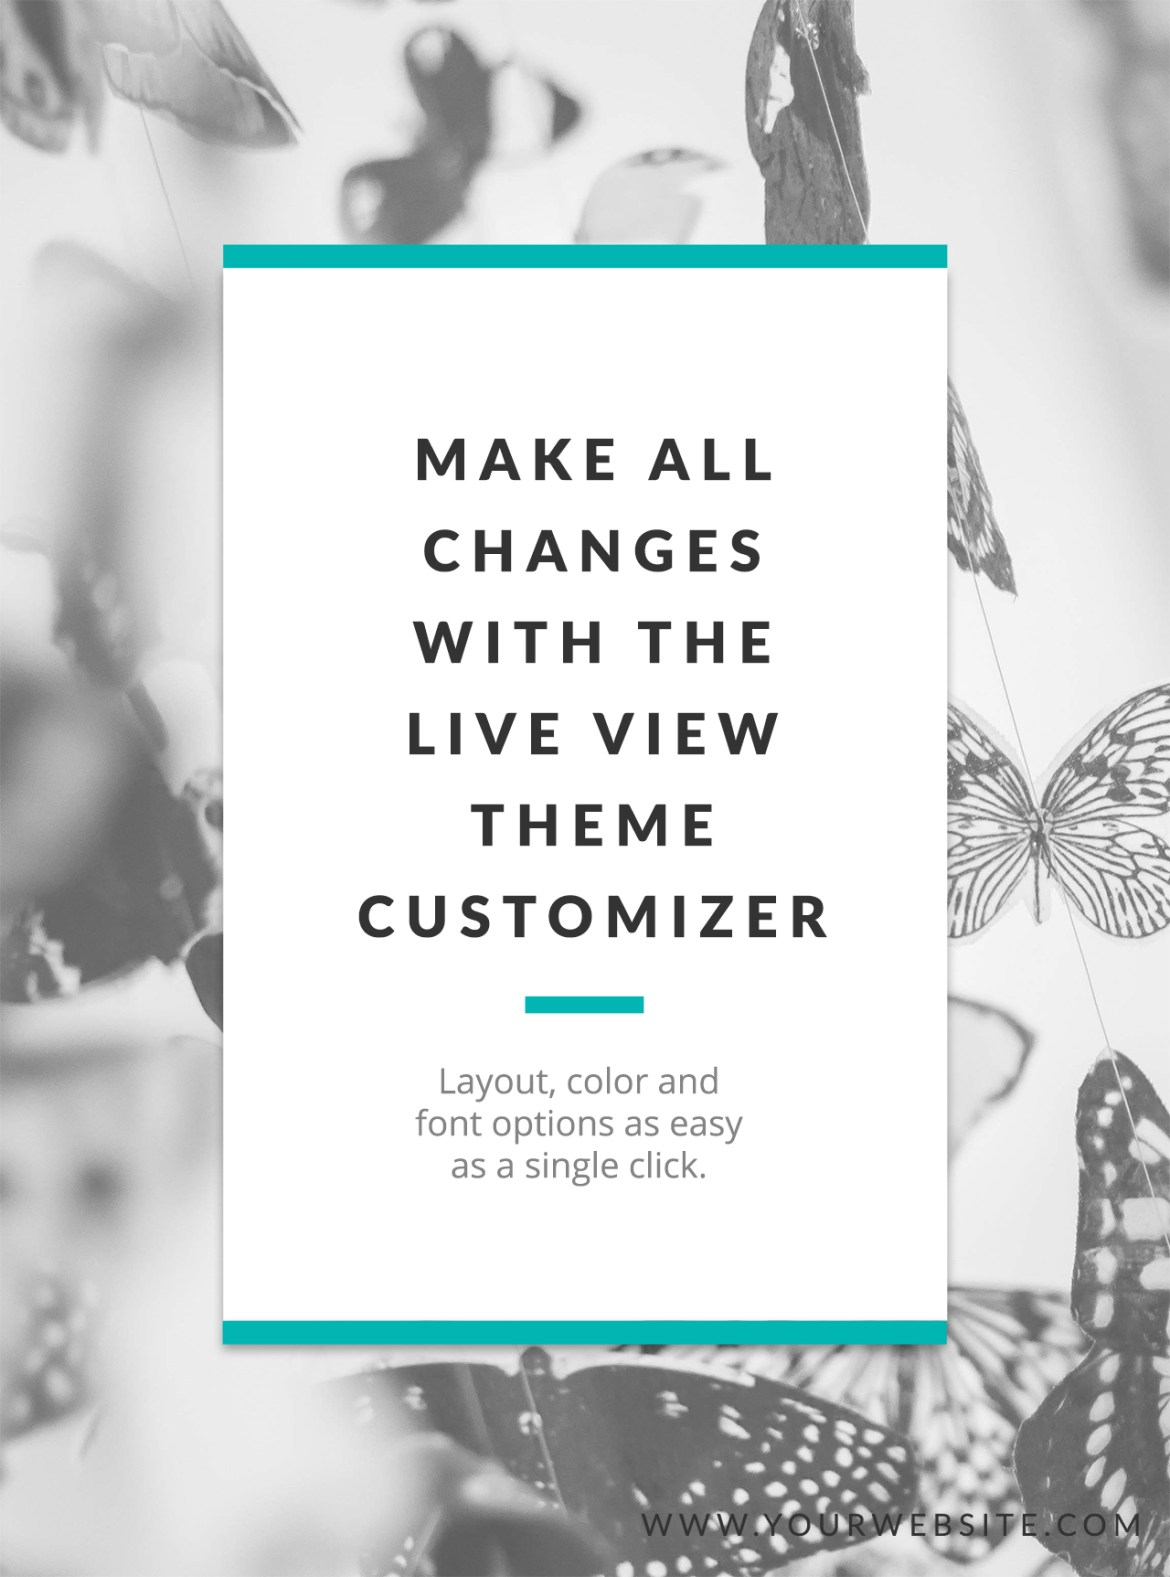 Live View Theme Customizer